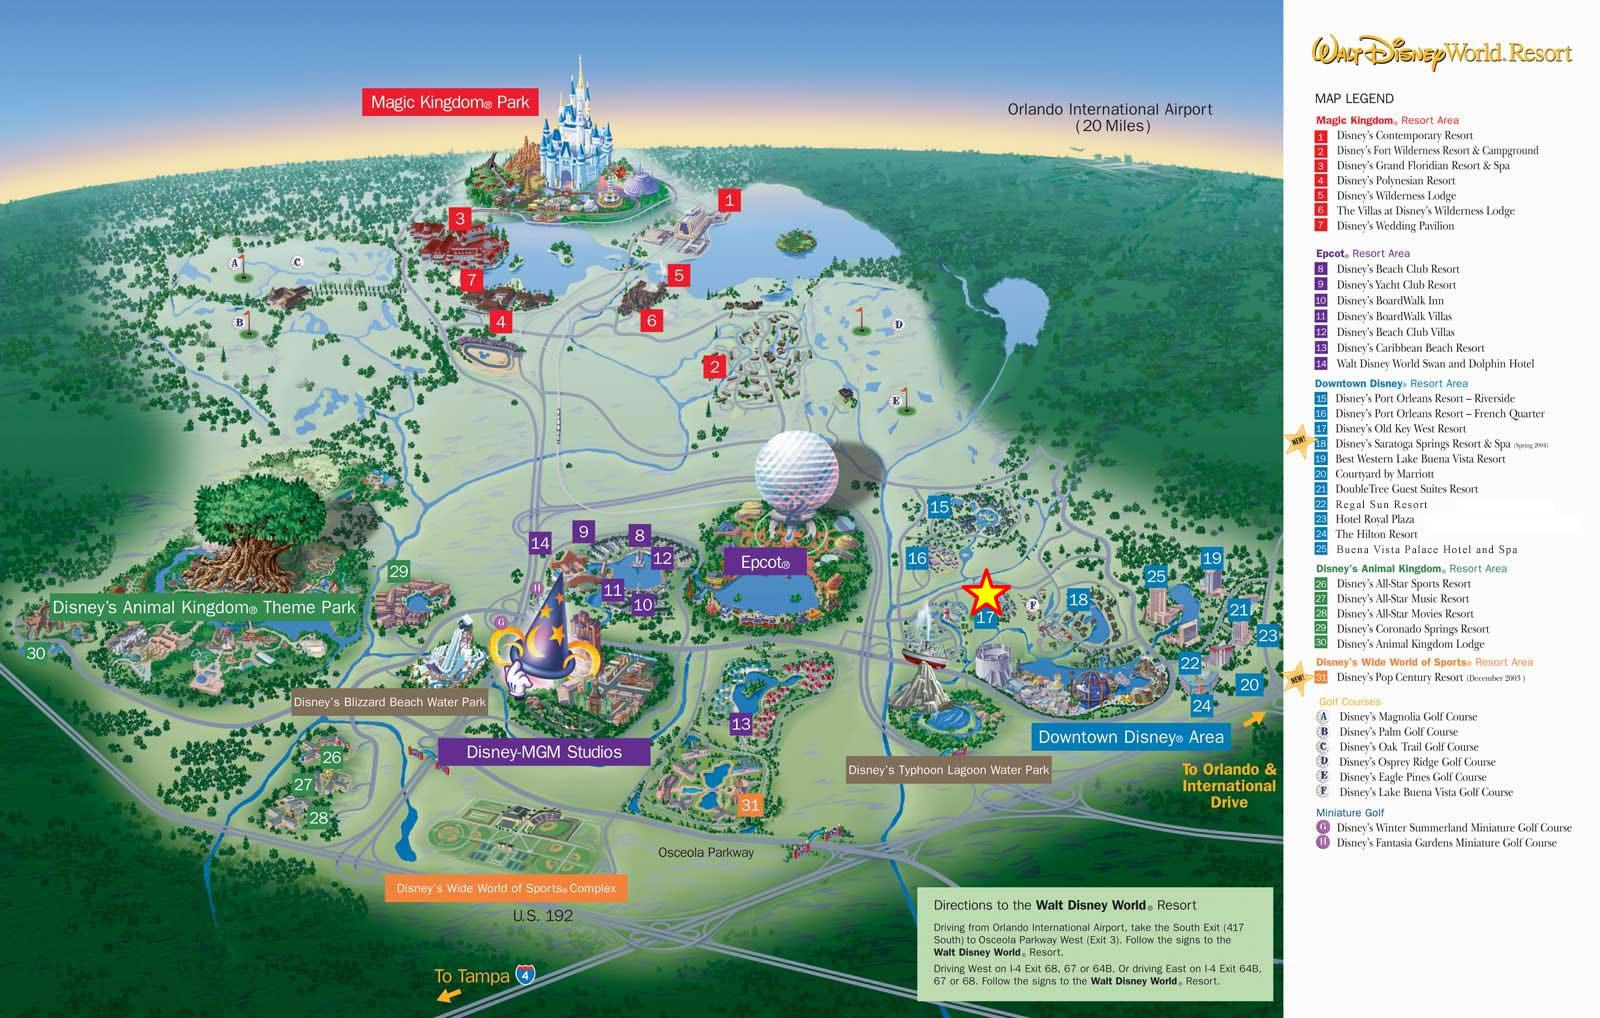 Disneys-Boardwalk-Villas-Location-Map